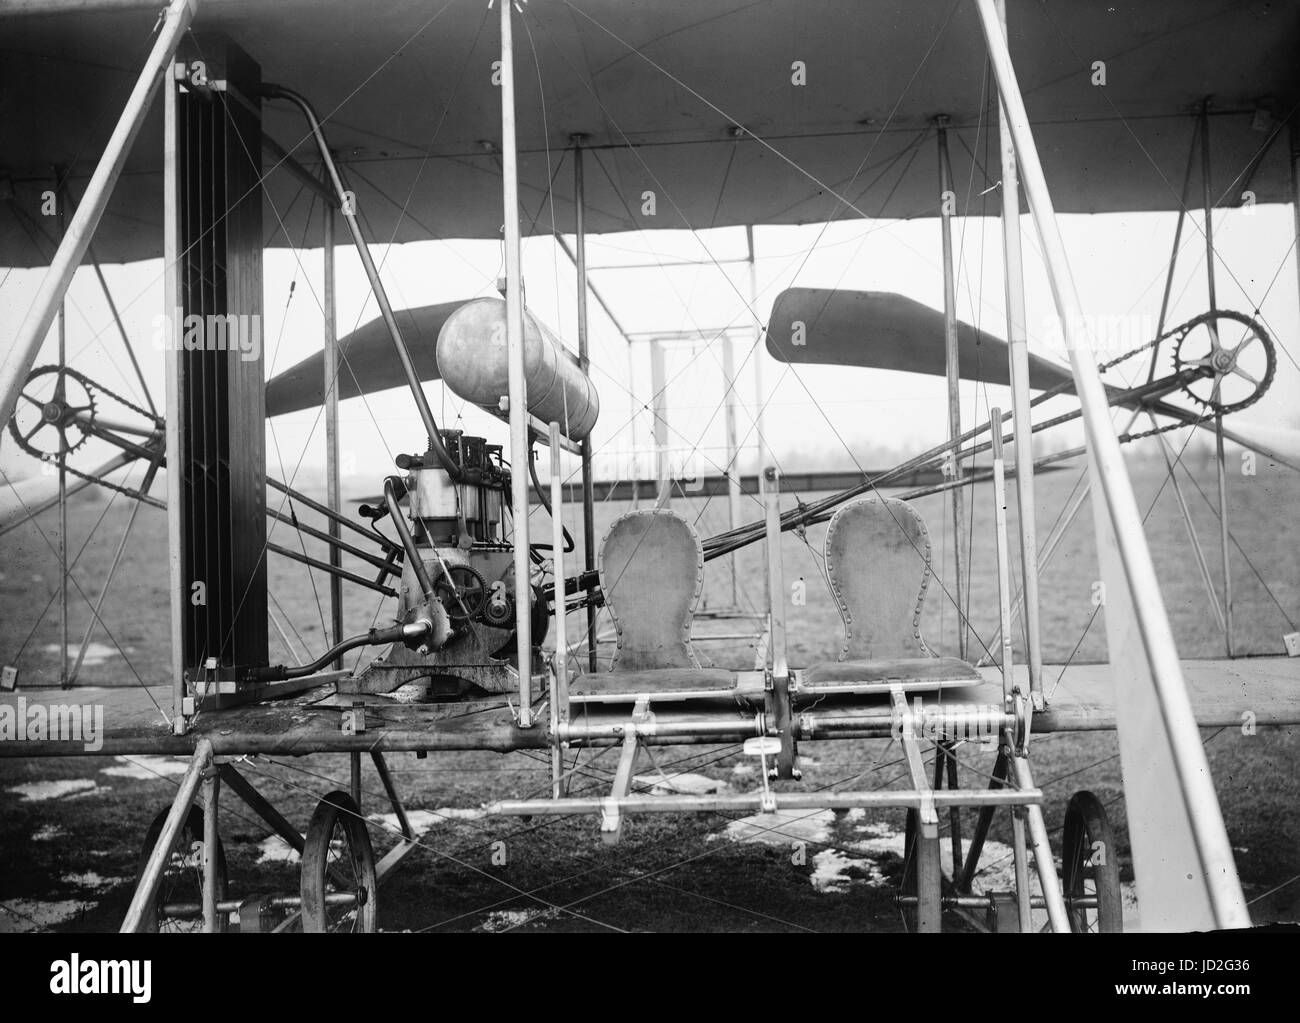 Close-up view of airplane, including the pilot and passenger seats. - Stock Image